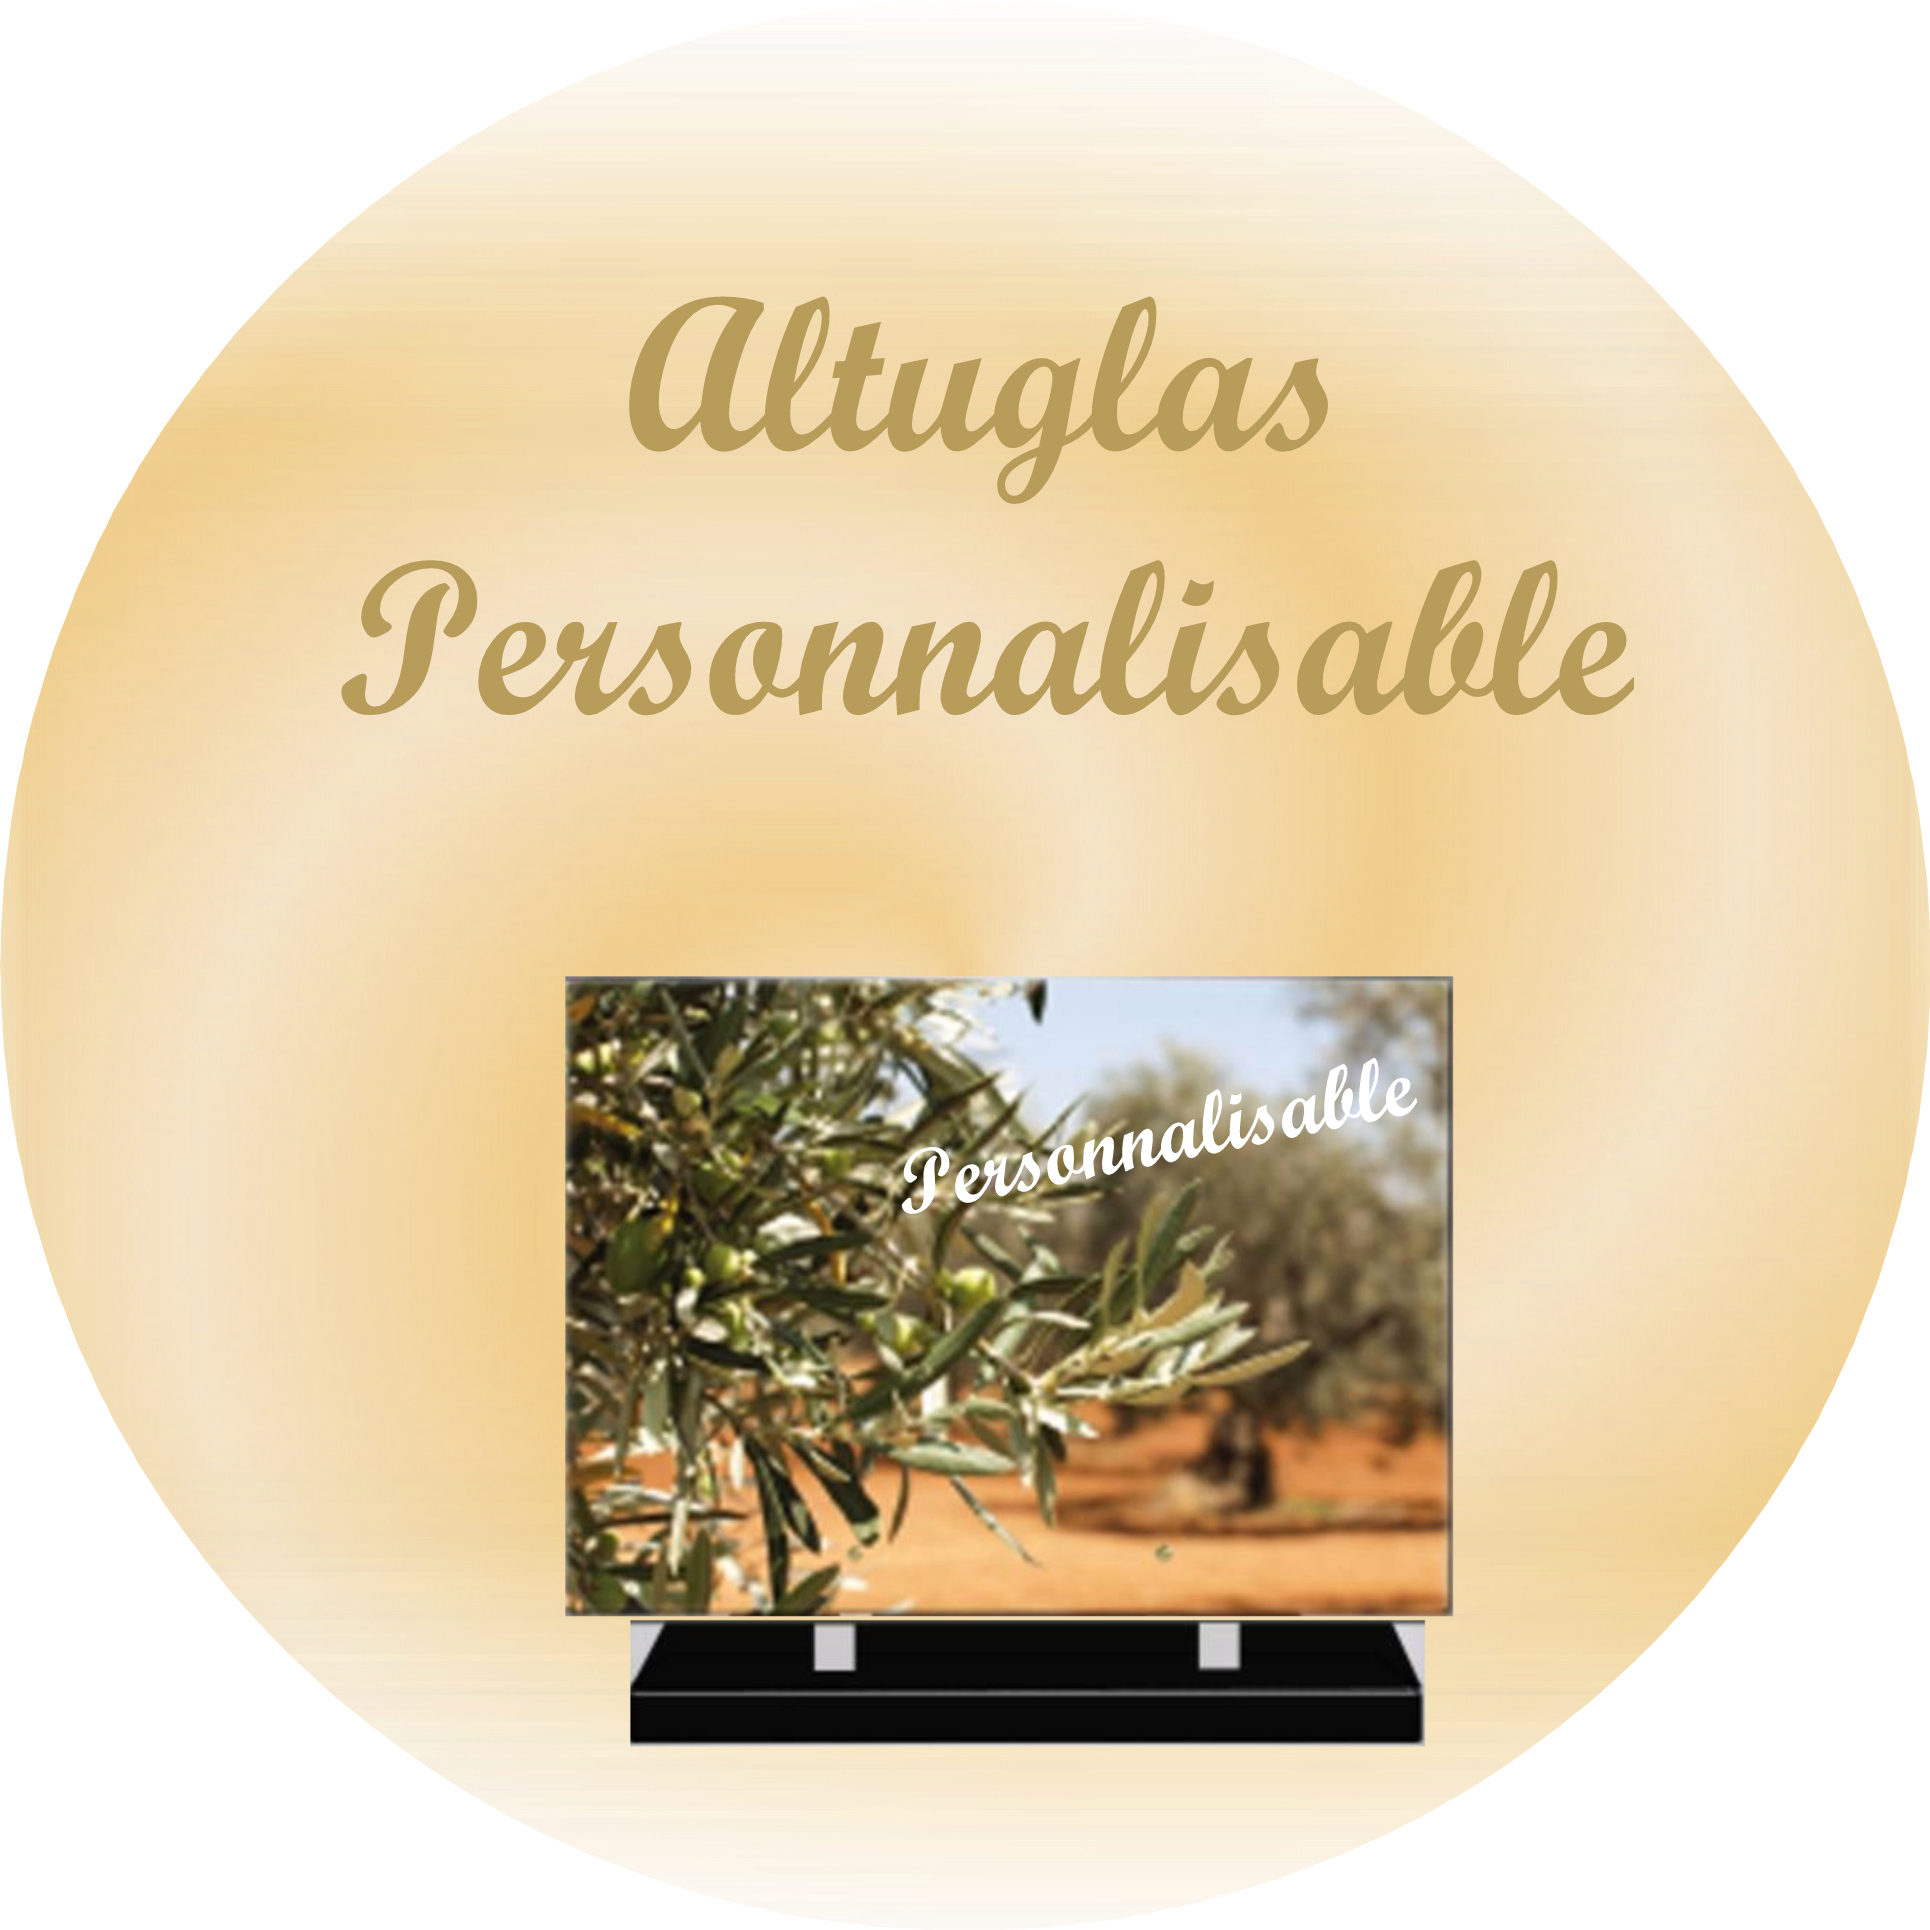 PLAQUES FUNERAIRES MODERNES PERSONNALISABLES RECTANGLE TRUN